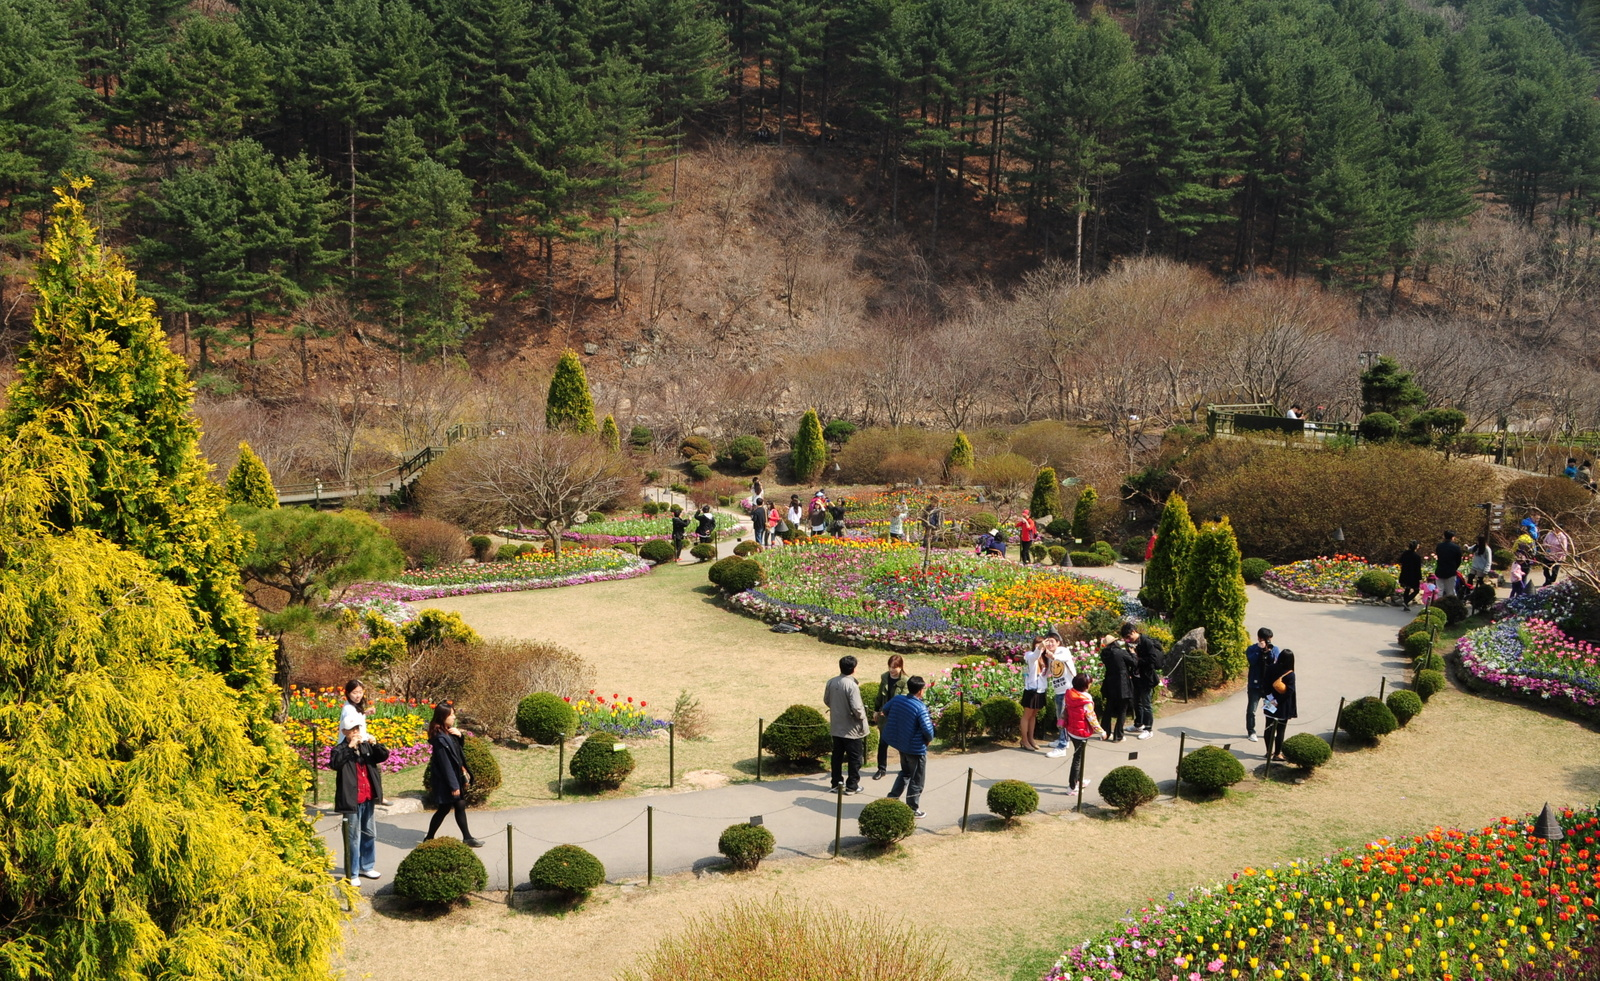 Images of Korea: PhotoTrip to the Garden of Morning Calm(아침고요수목원)